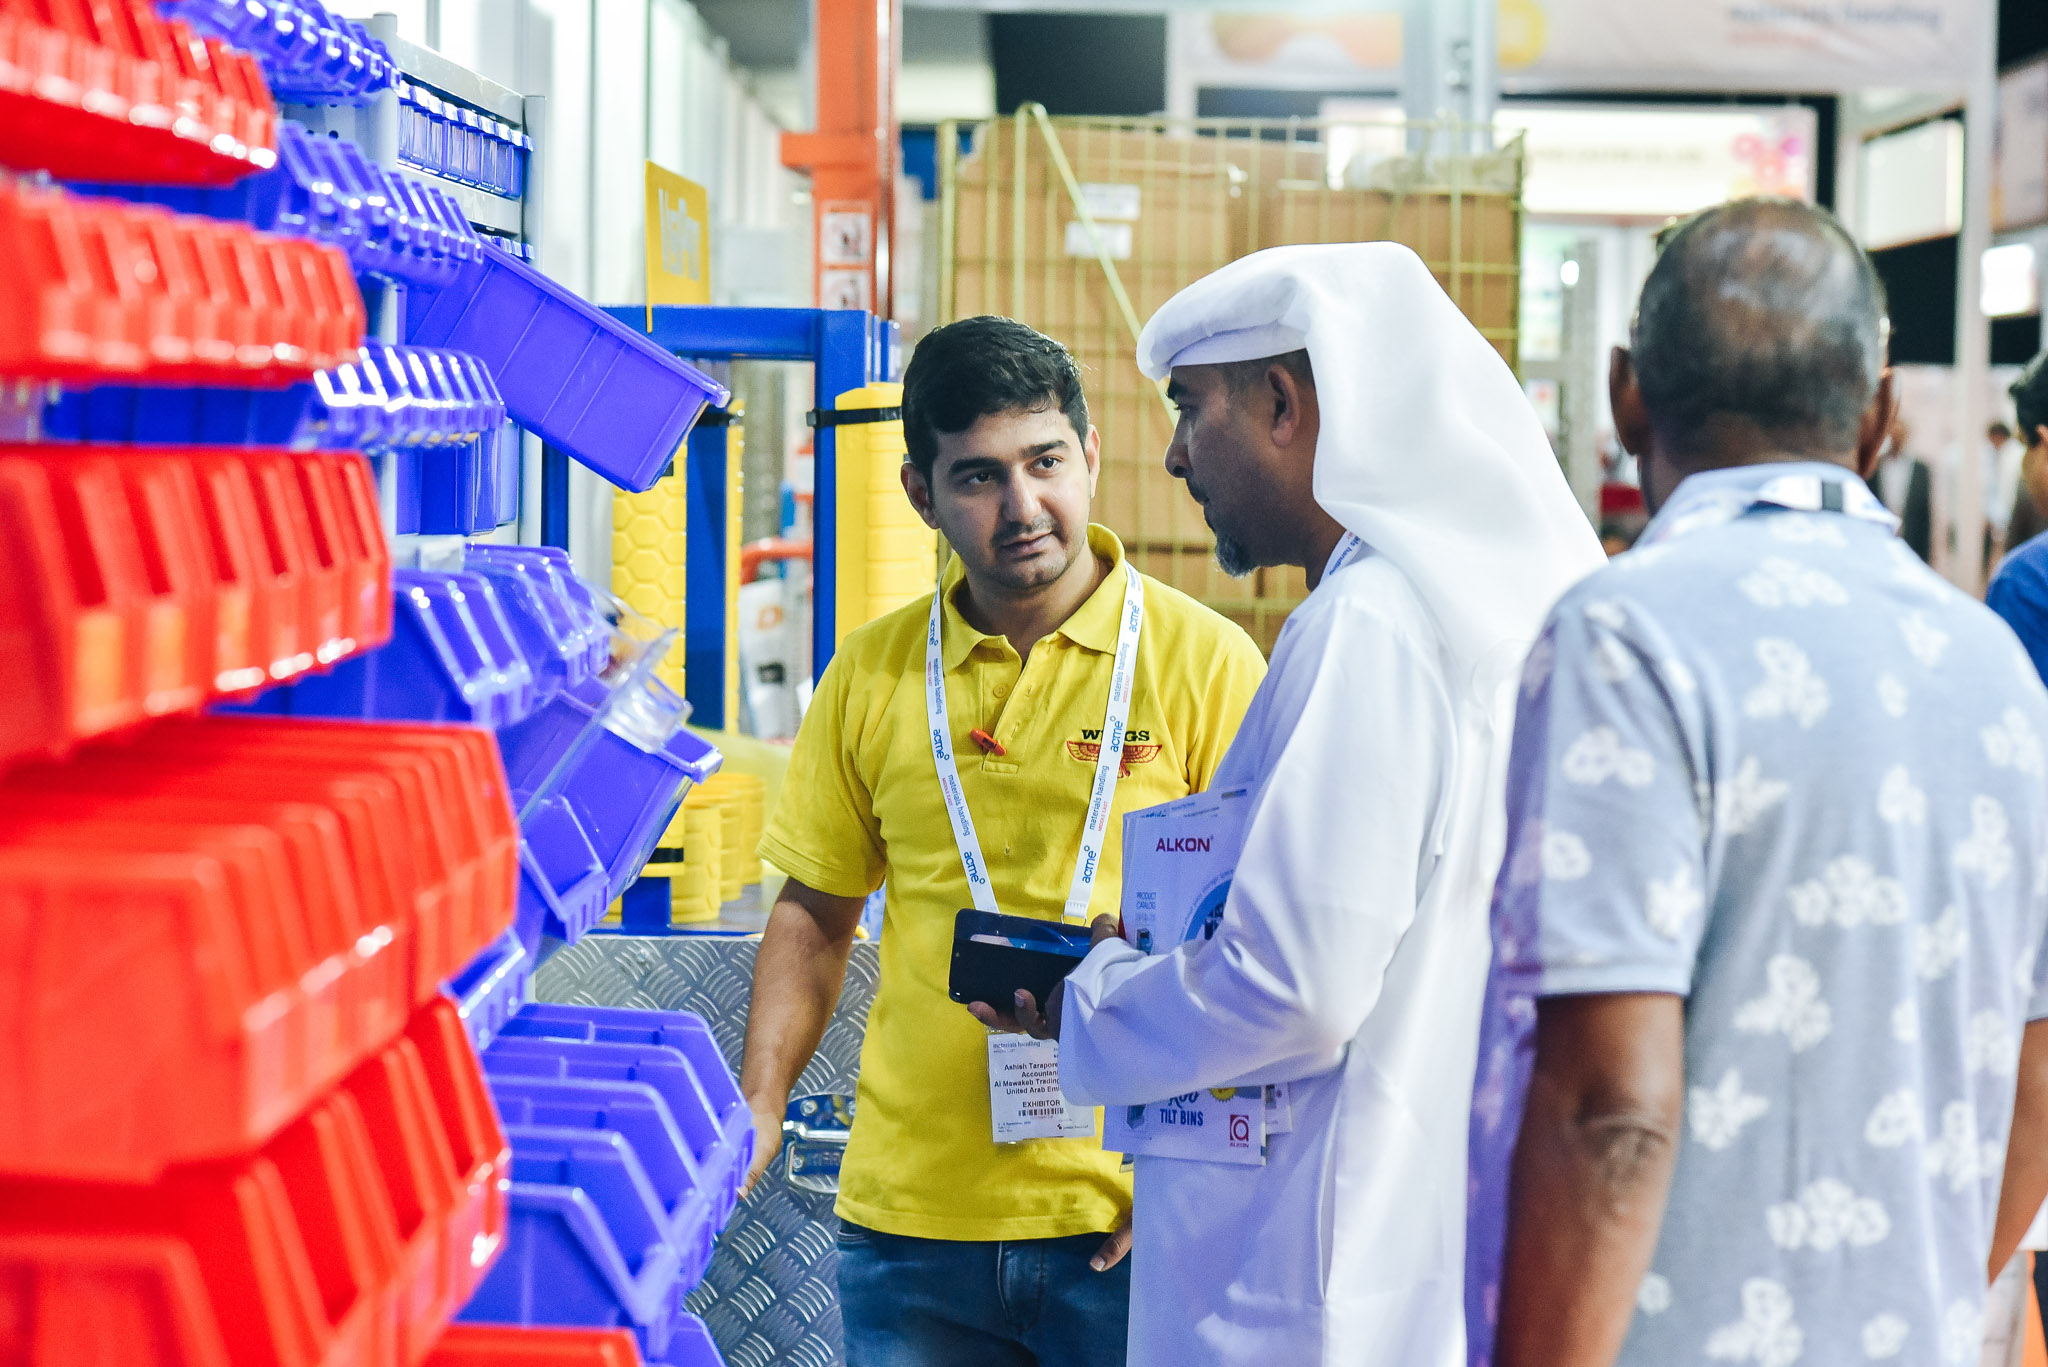 Materials Handling Middle East - Leaders in Warehousing